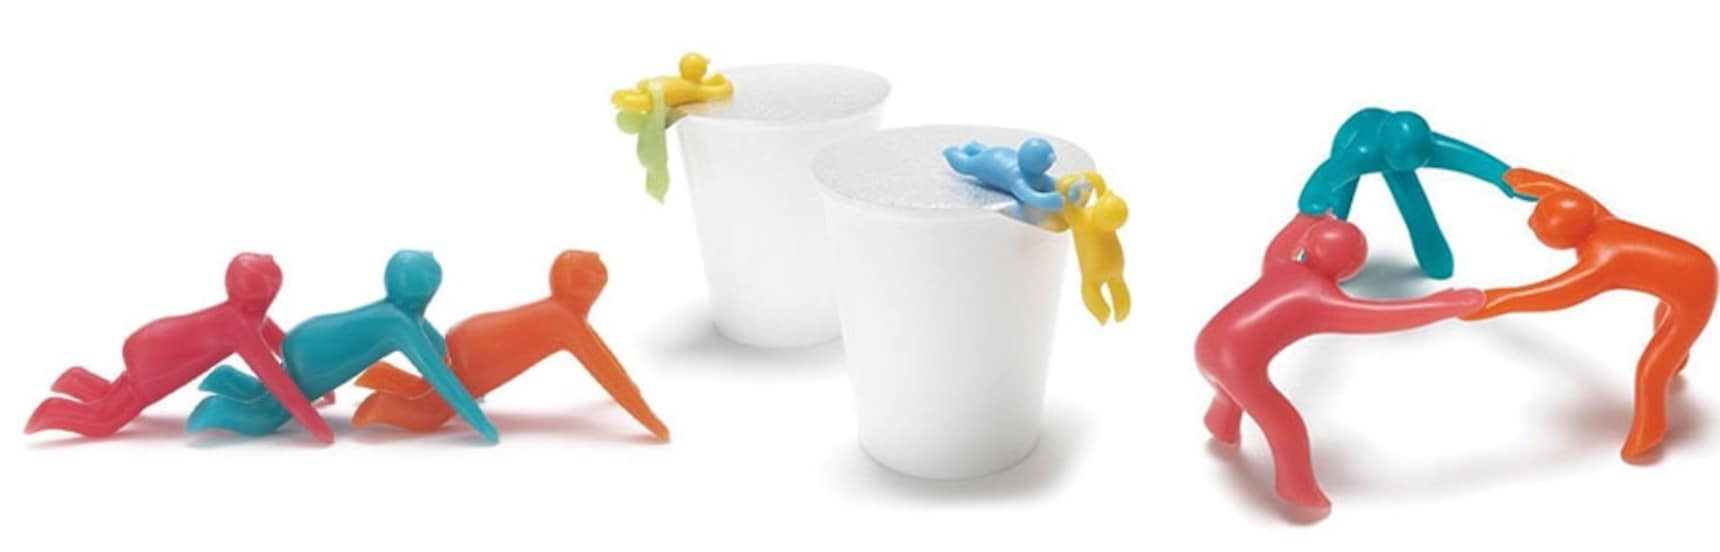 Color-Changing Ramen Cup Holders